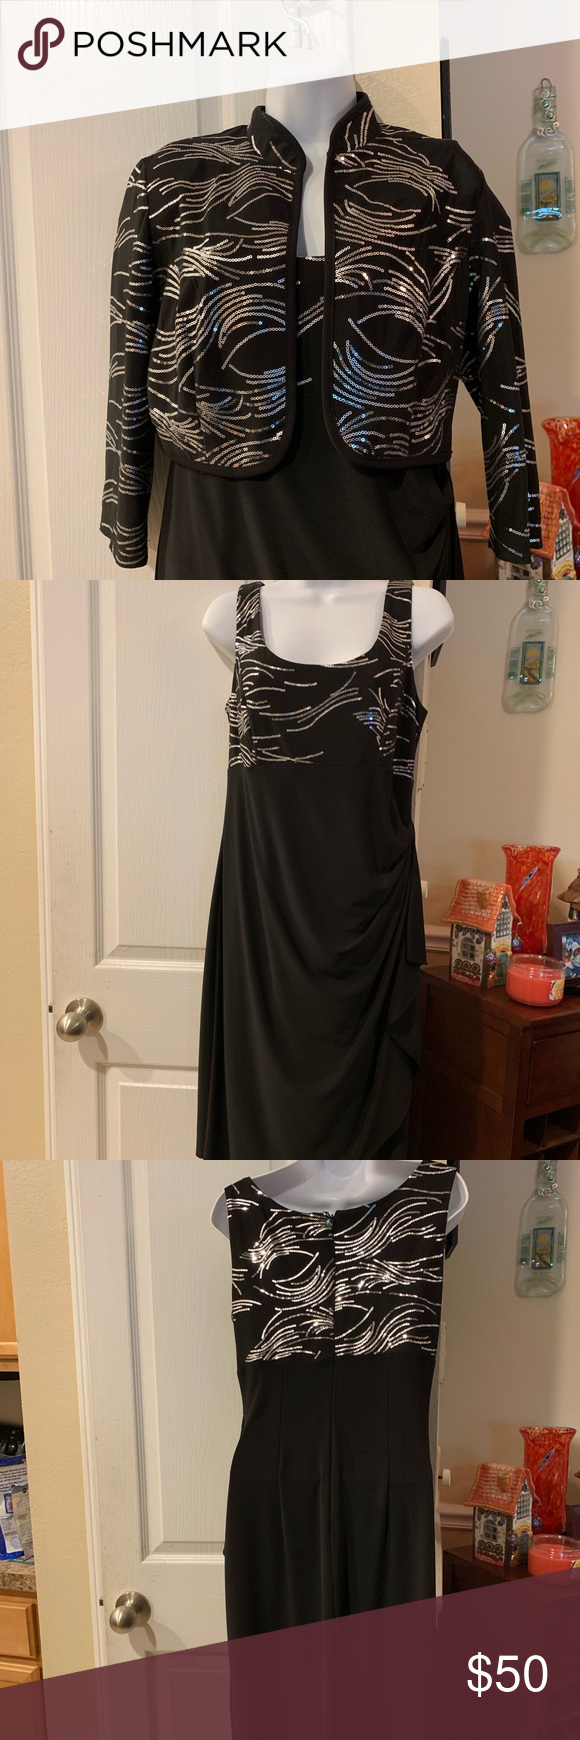 Evening Dress Worn Once Black Dress With Sequins Gathers On The Left Side Picture Shown Wear With Or With Evening Wear Dresses Evening Dresses Jacket Dress [ 1740 x 580 Pixel ]